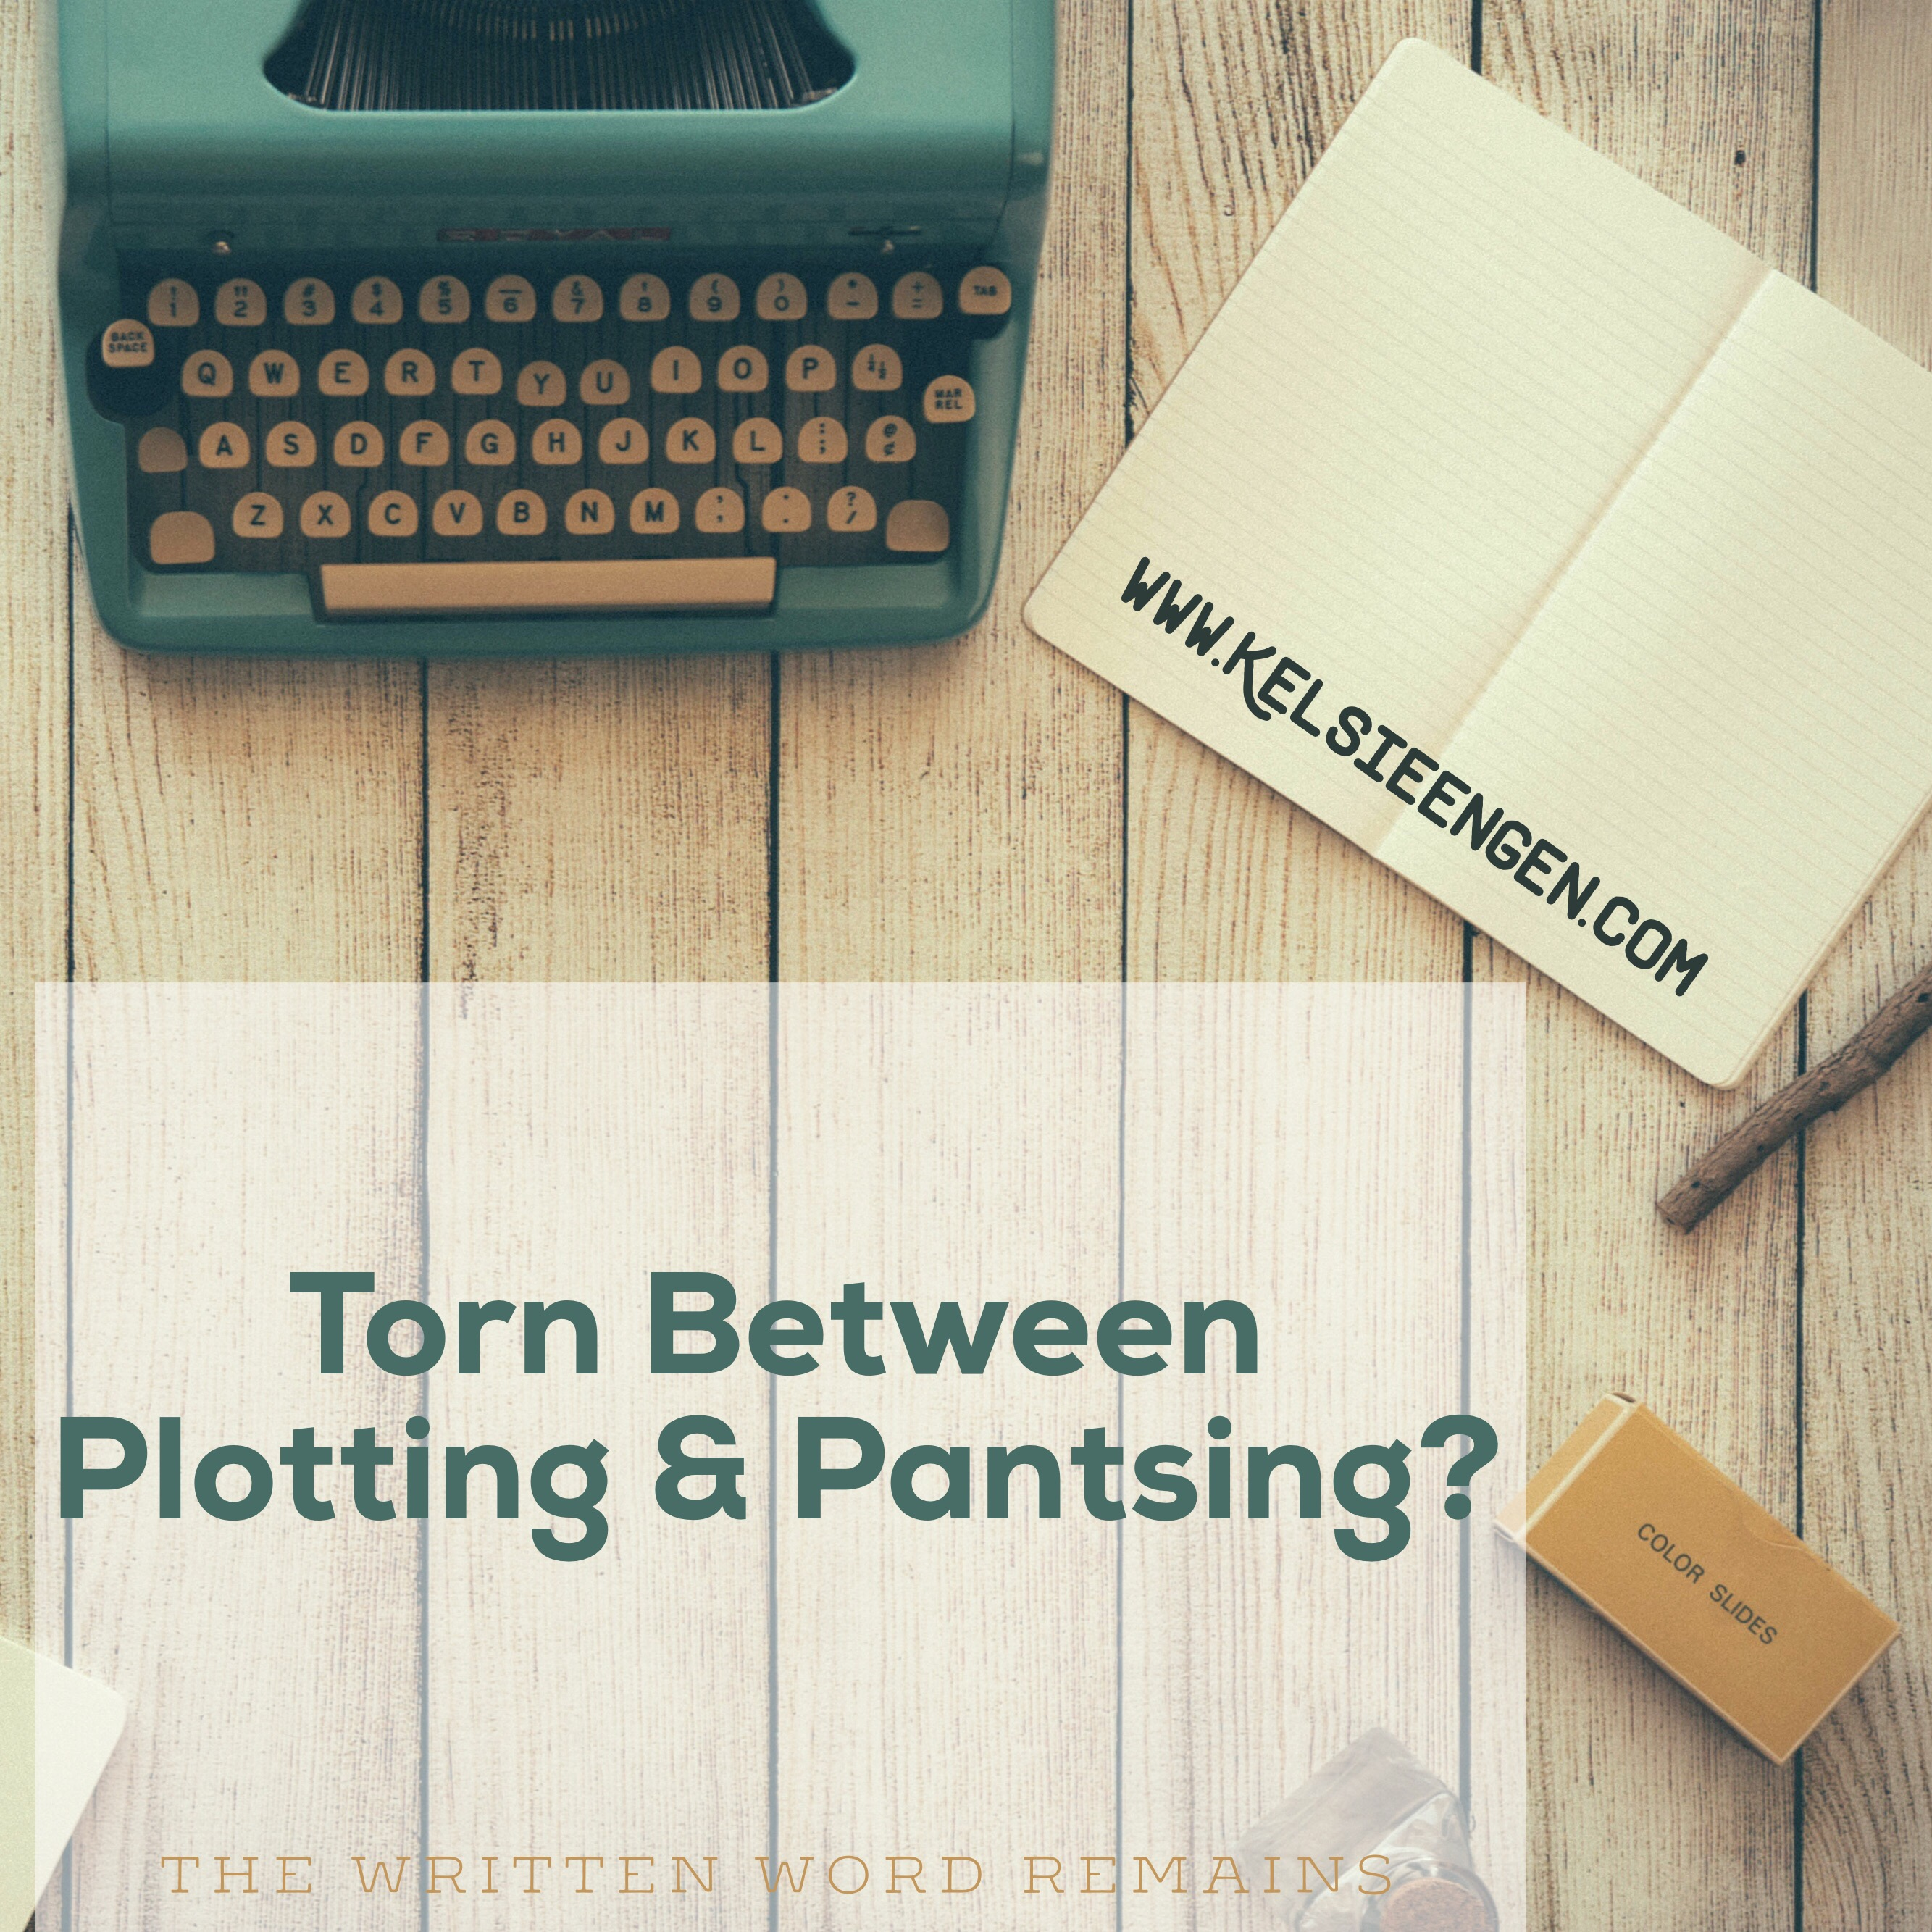 Guest Post: Torn Between Plotting & Pantsing?